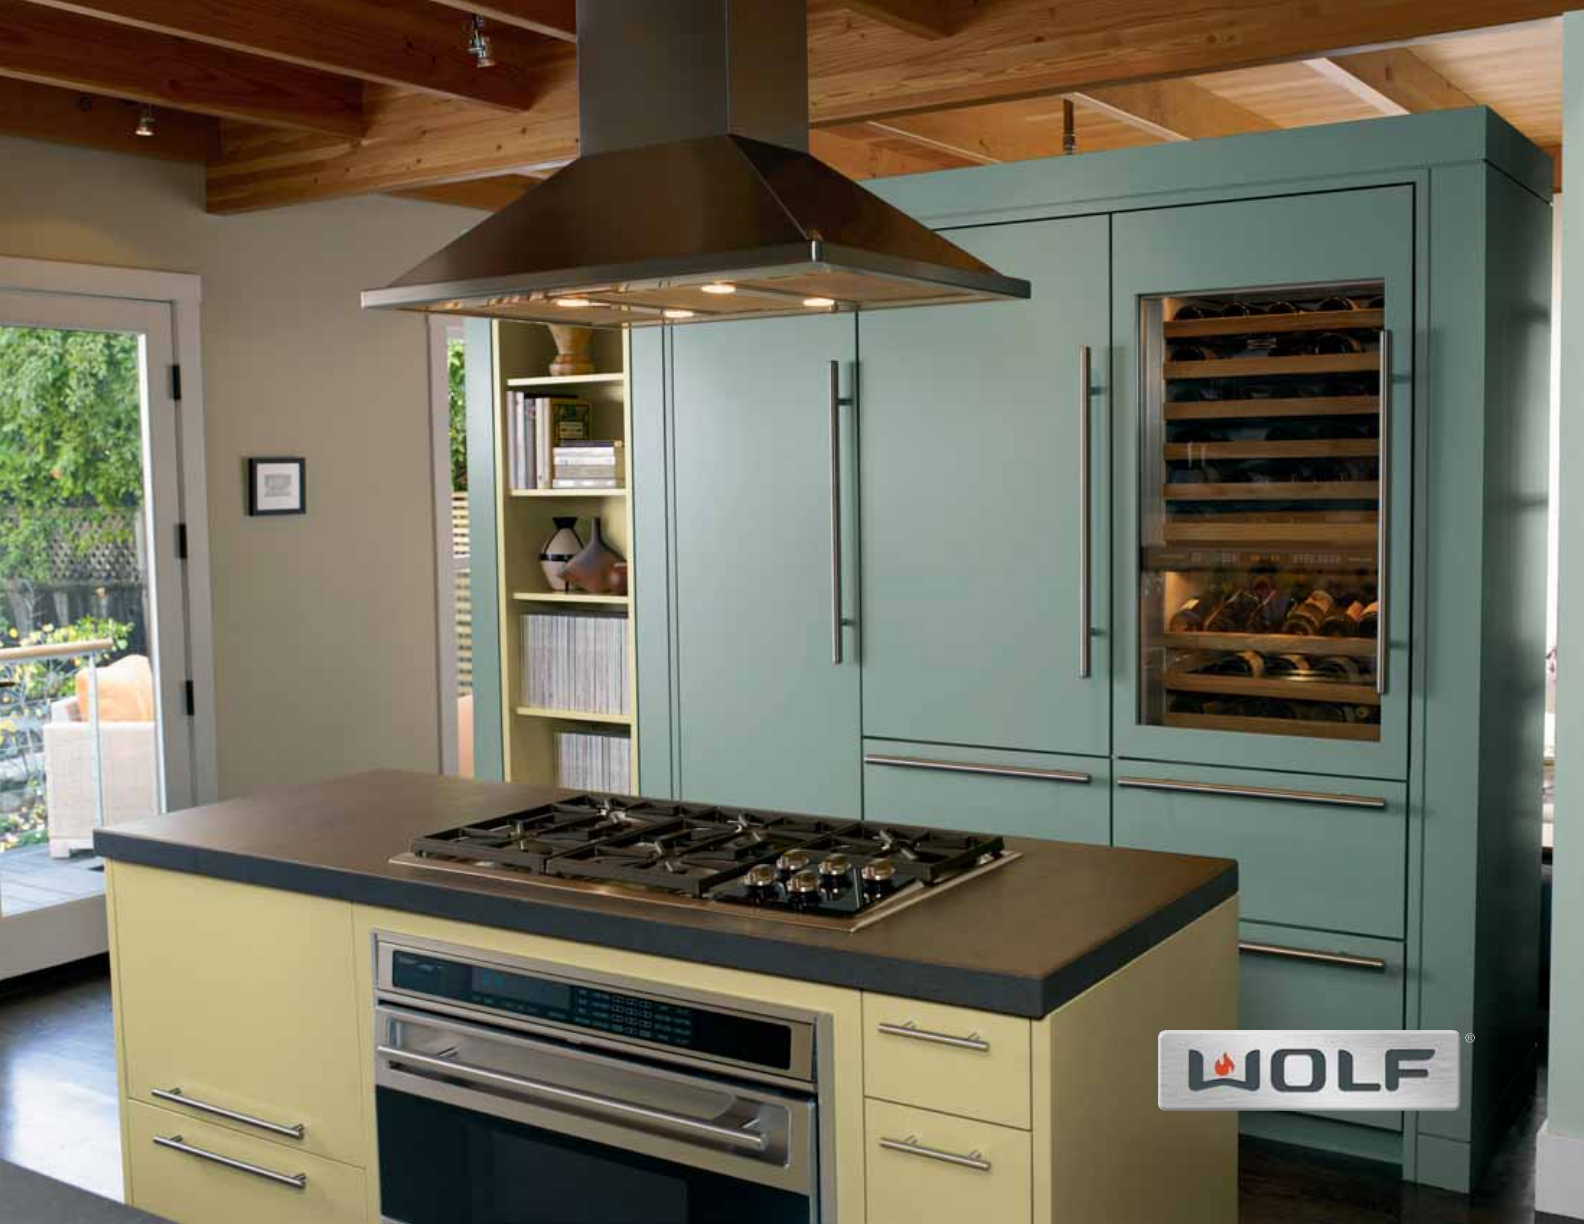 Uncategorized Kitchen Appliance Company wolf appliance company cooktop 1200 user guide manualsonline com all information is subject to change refer www wolfappliance for current information